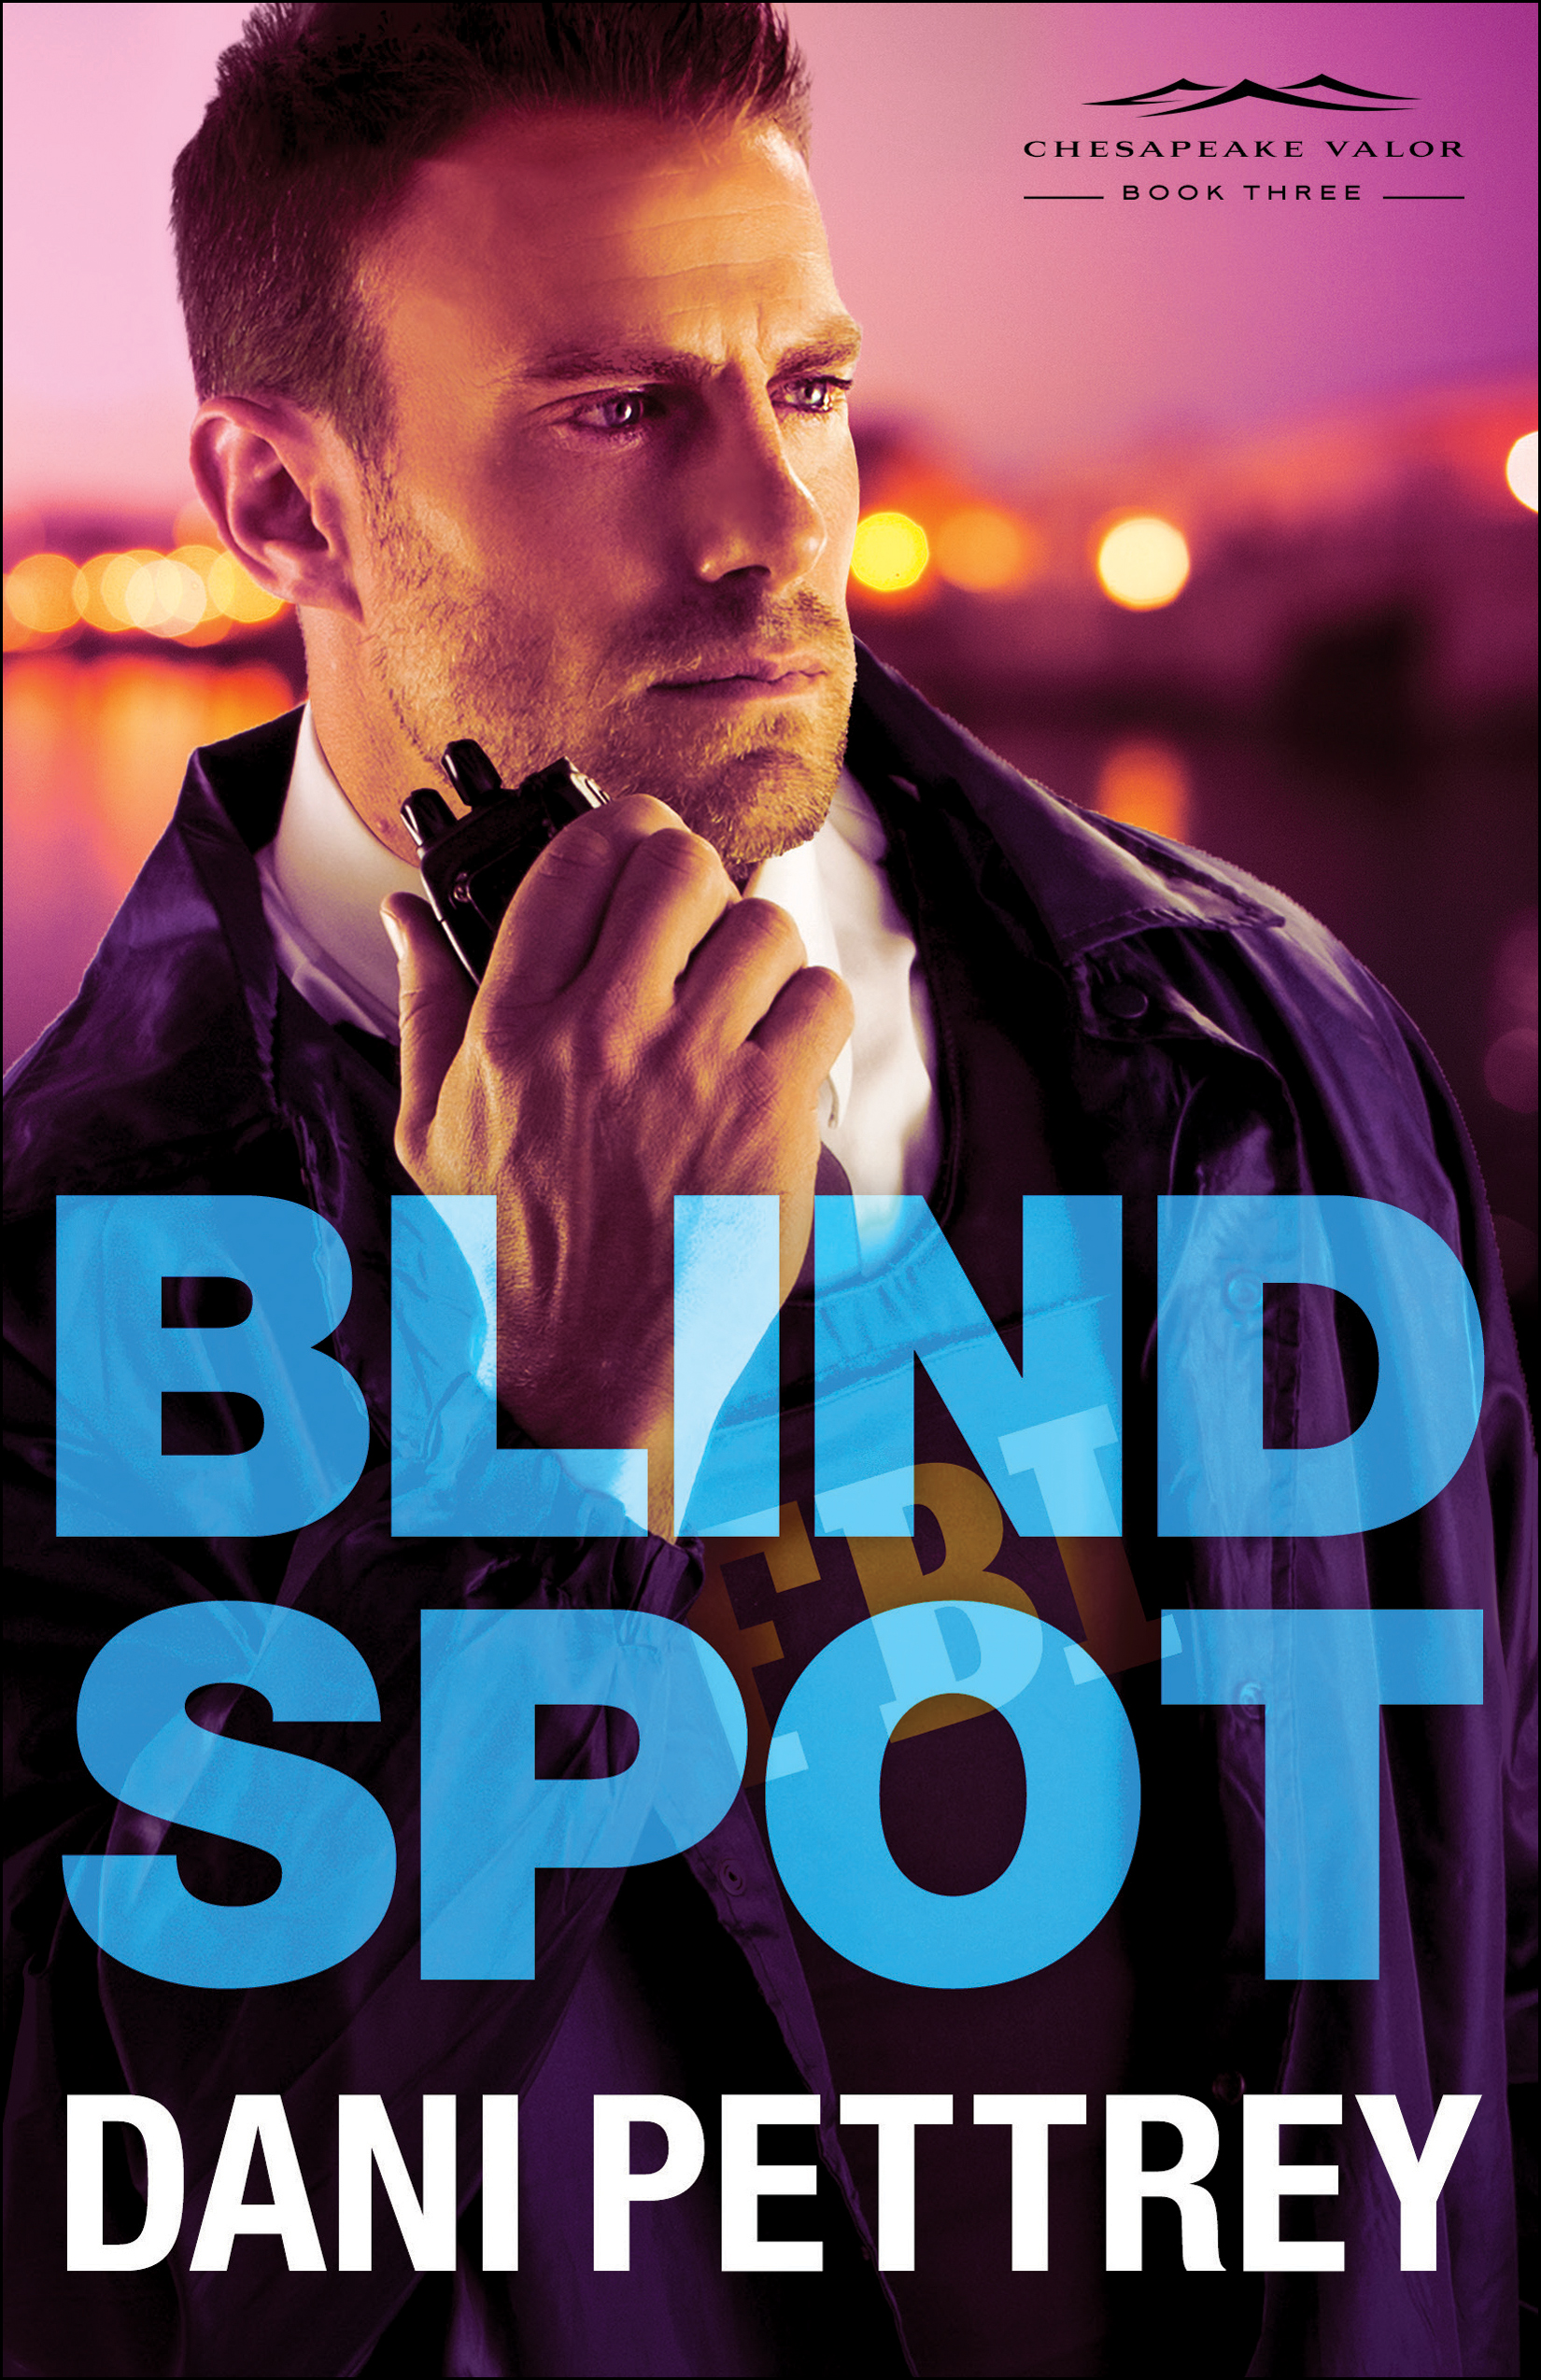 Book review of Blind Spot by Dani Pettrey (Bethany House) by papertapepins